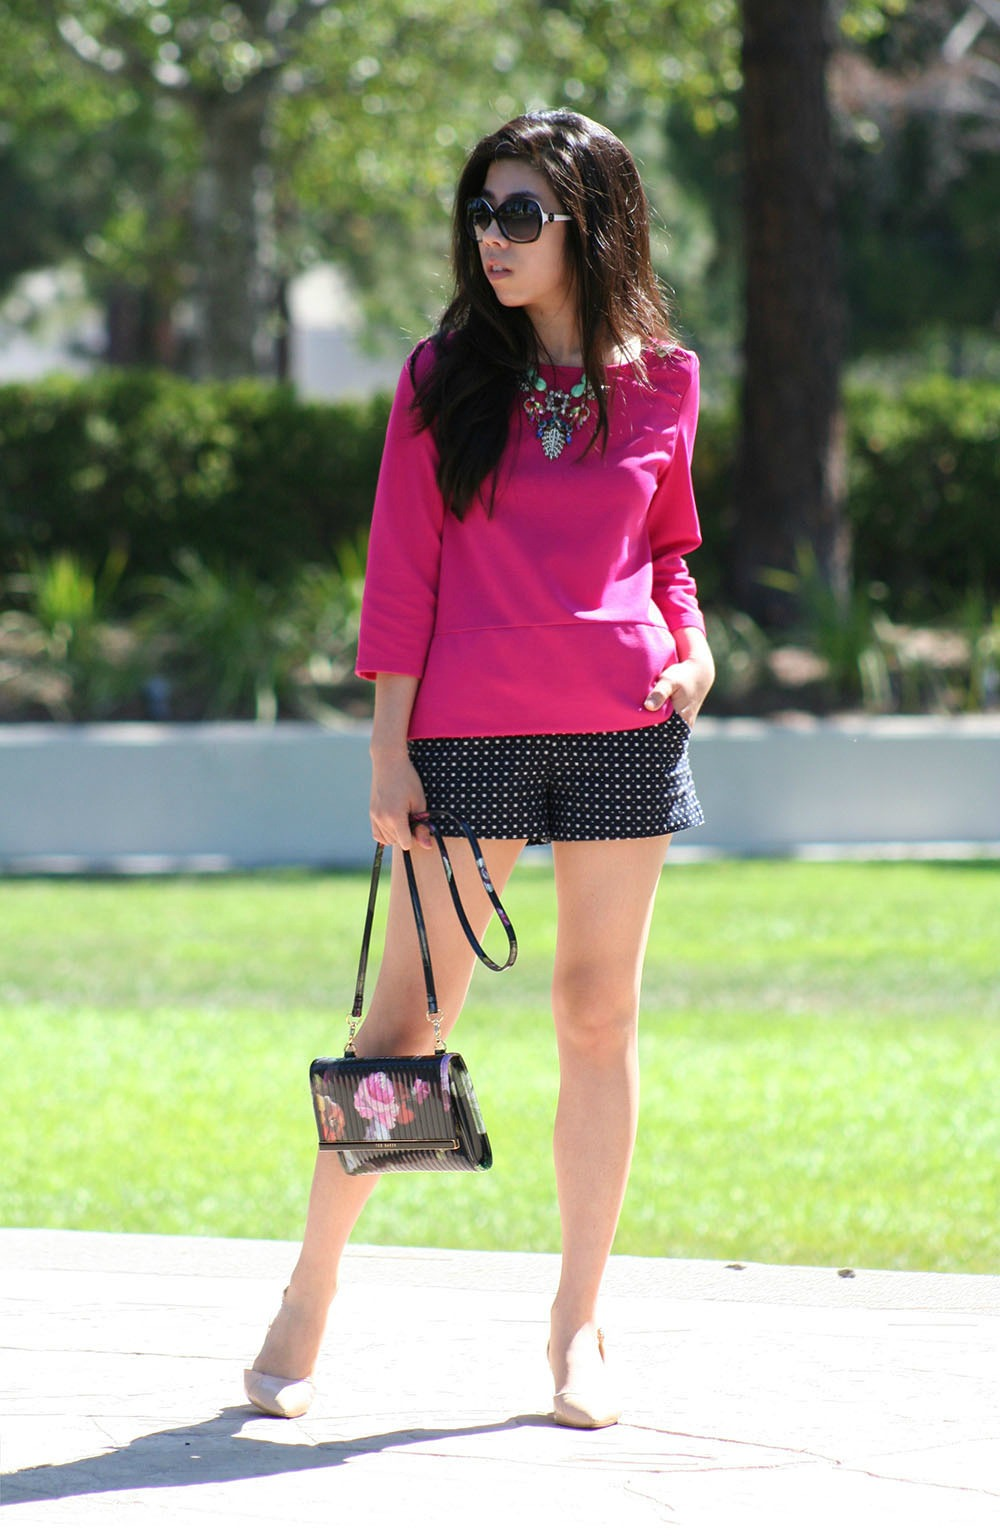 Adrienne Nguyen_Invictus_Summer Style_Summer Fashion_Boxy Colorblock Fashion